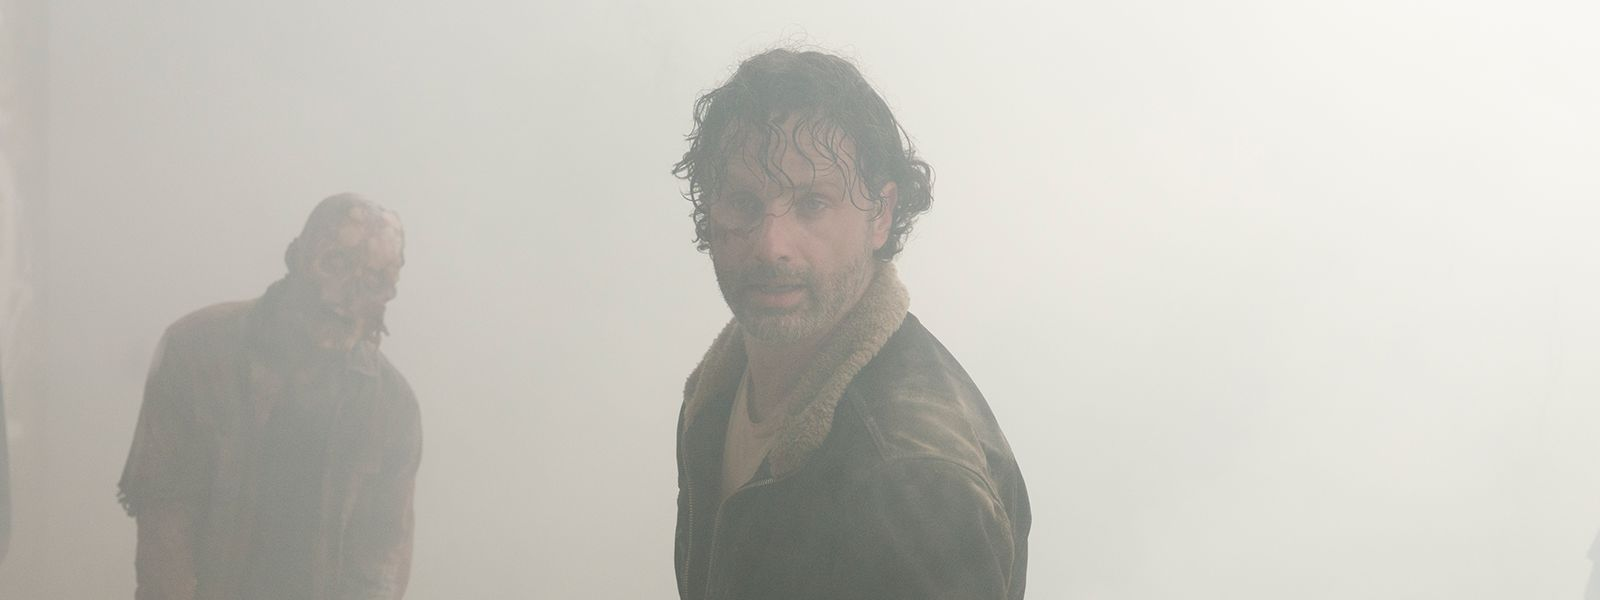 the-walking-dead-701-post-rick-grimes-andrew-lincoln-800×600